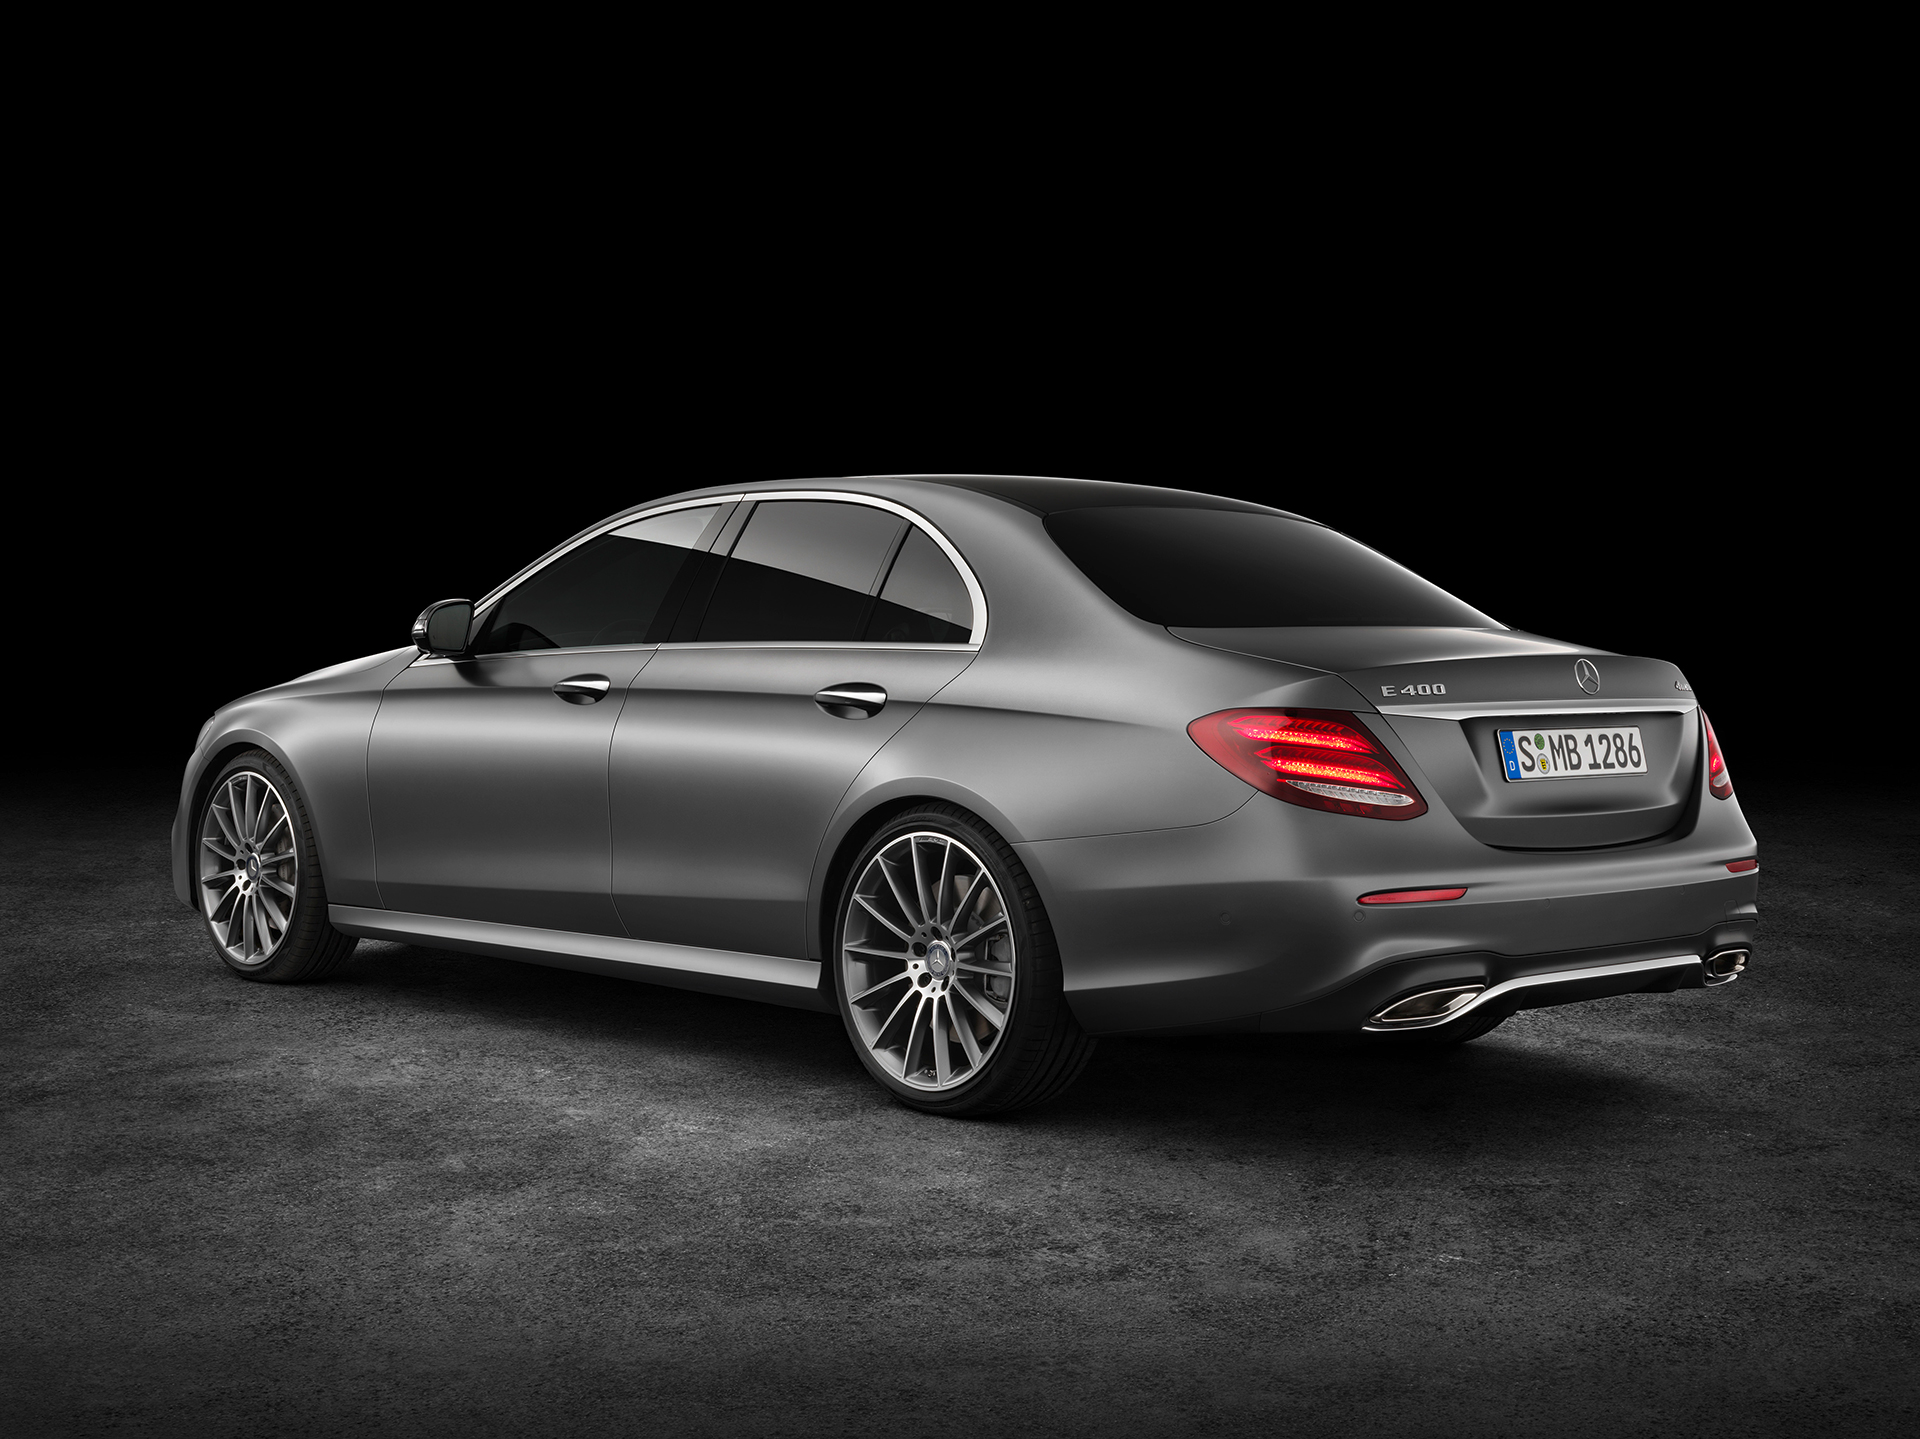 Mercedes-Benz E Class - 2016 - rear side-face / profil arrière